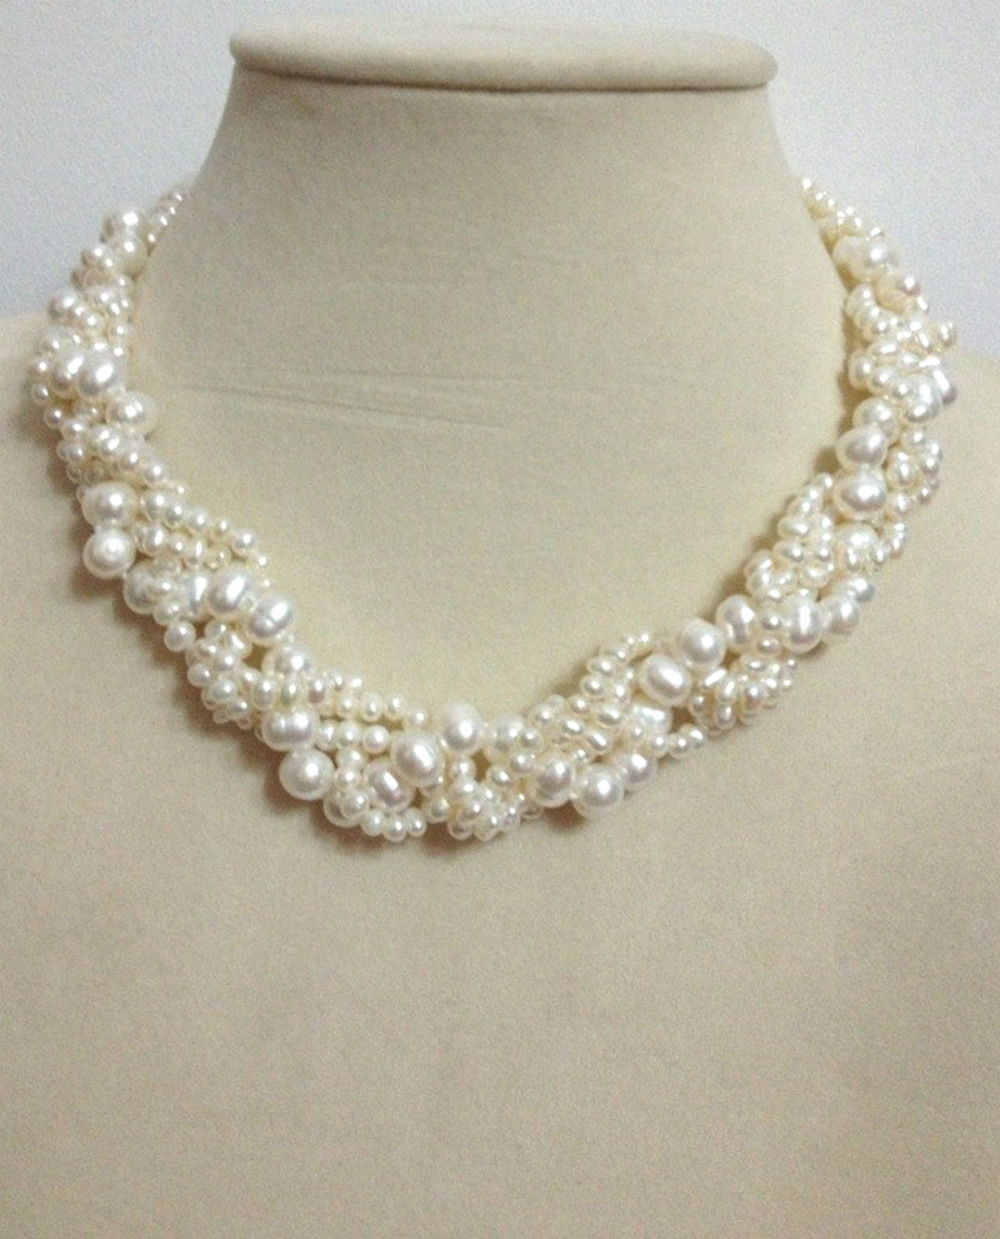 15 Popular And Latest Pearl Necklace Designs Styles At Life